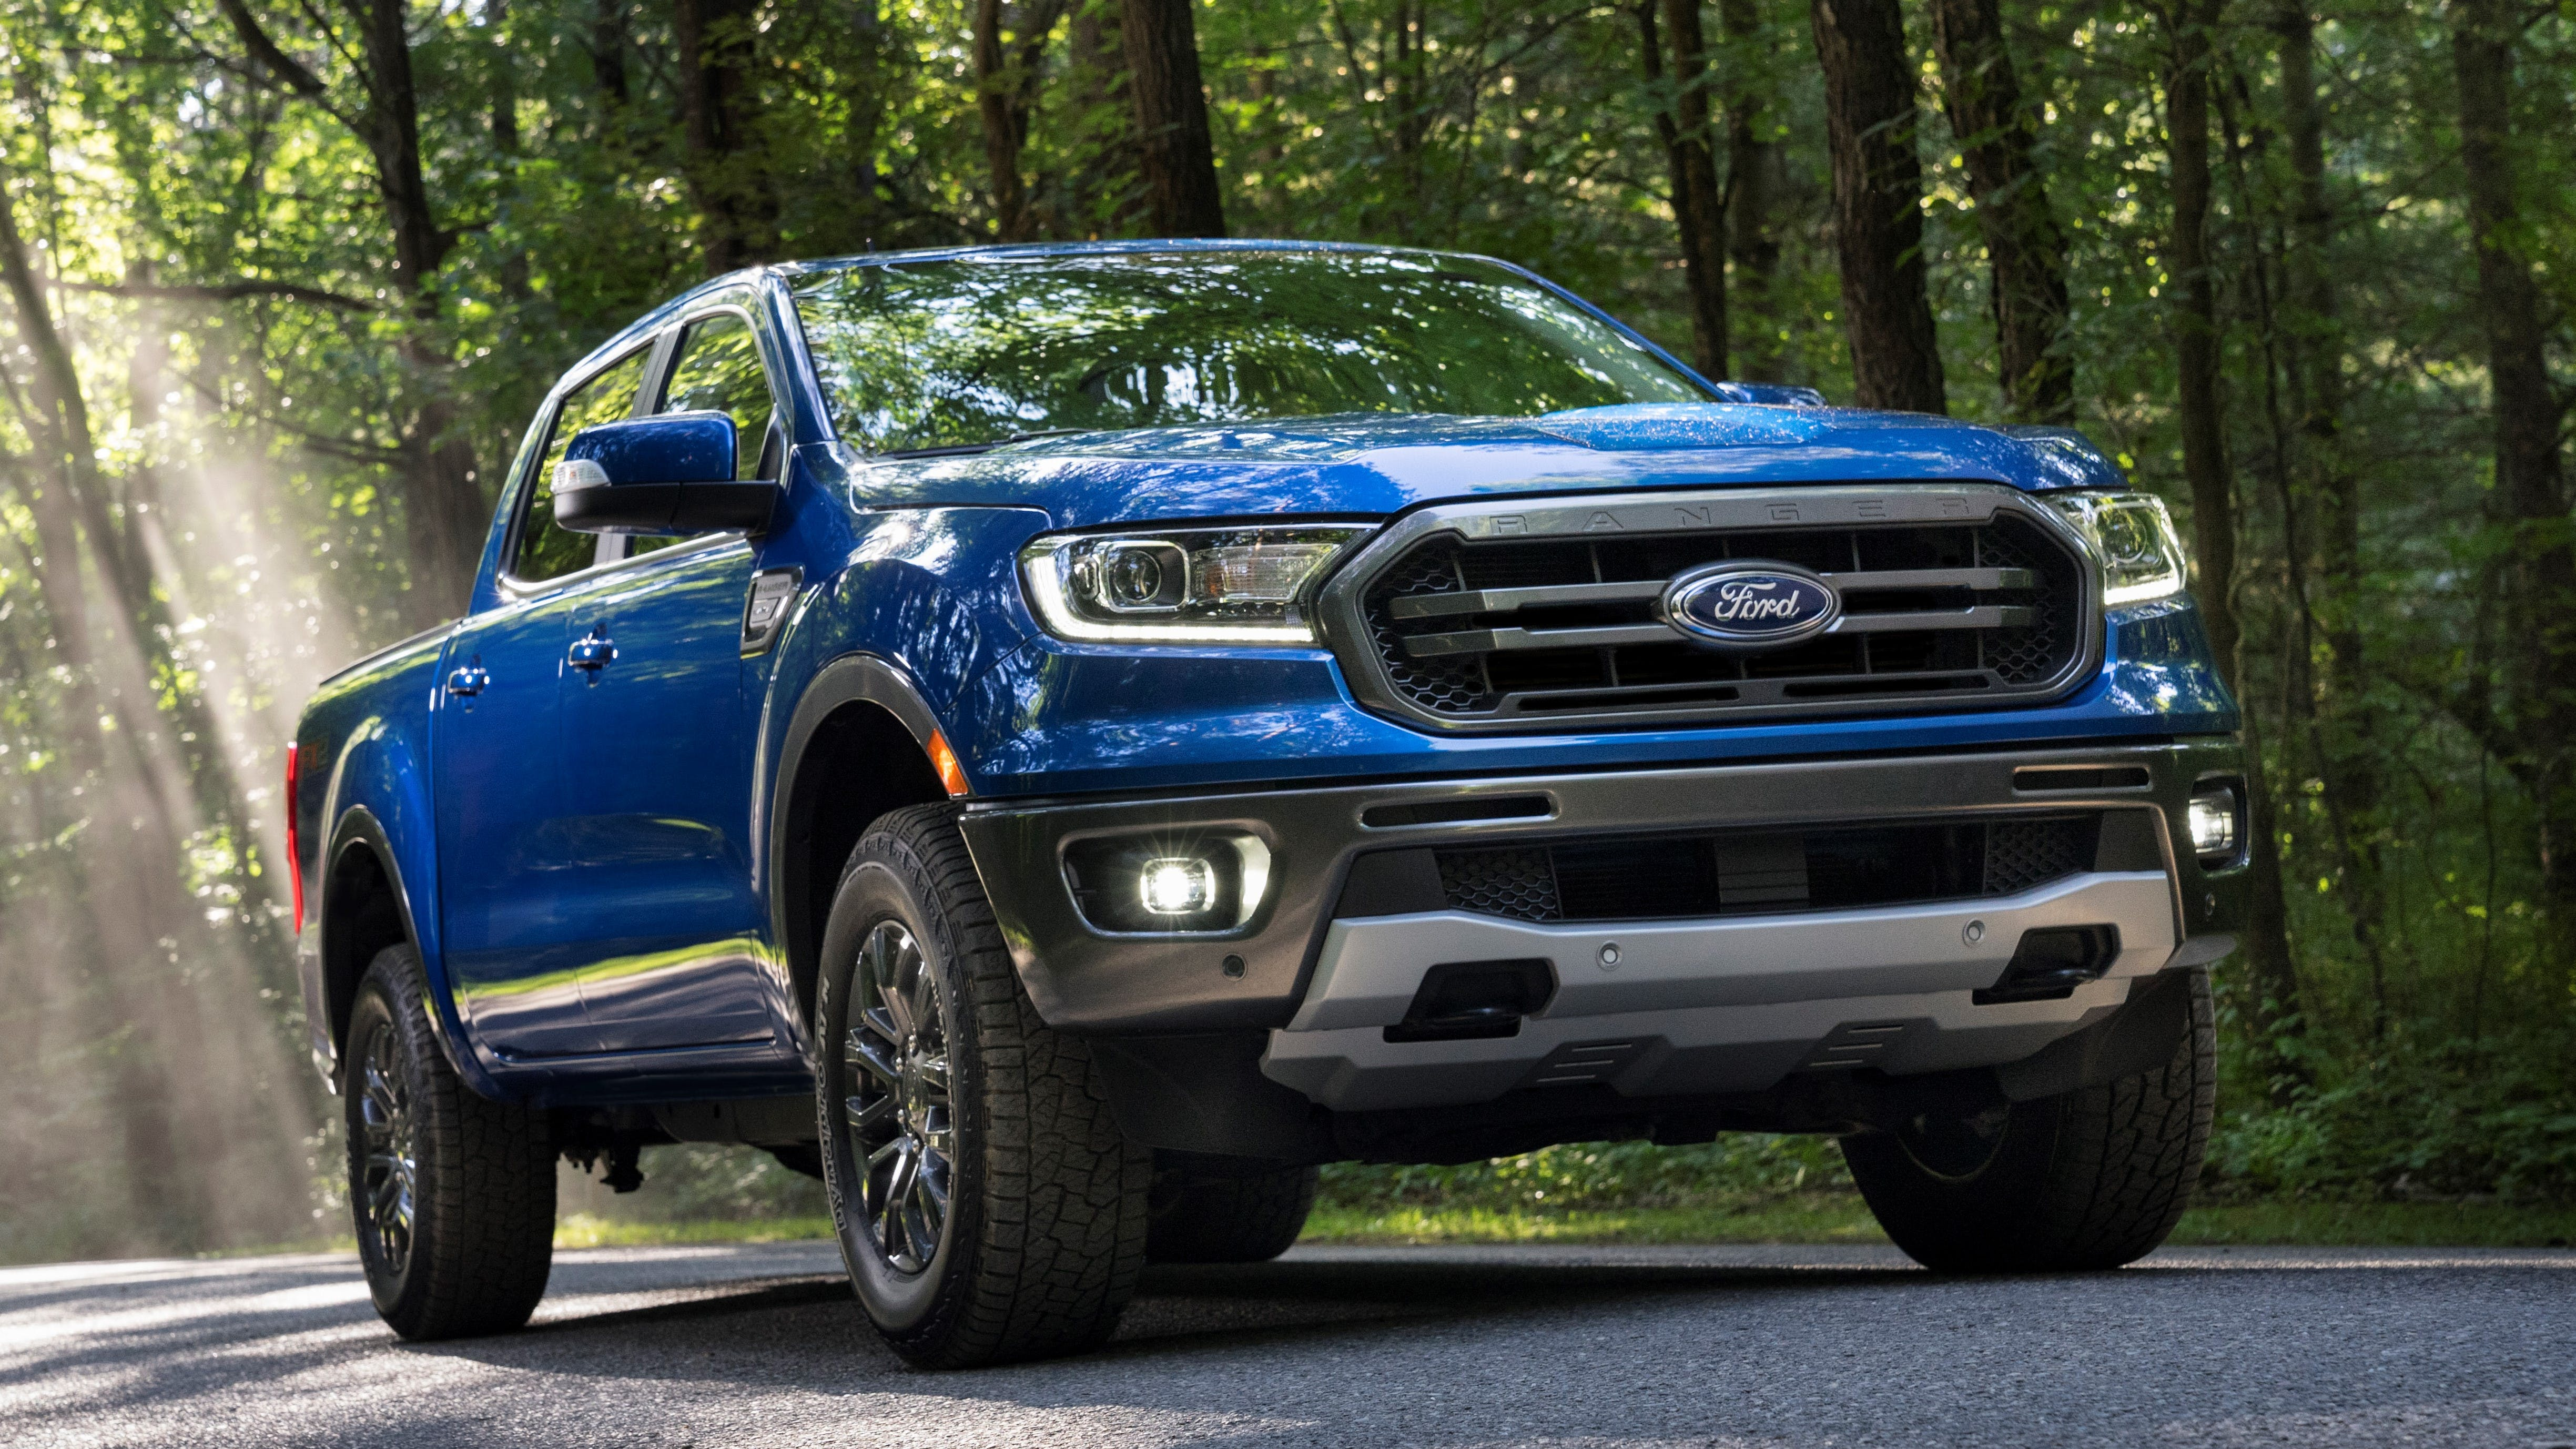 Best Memorial Day Car Sales In 2020 Carfax